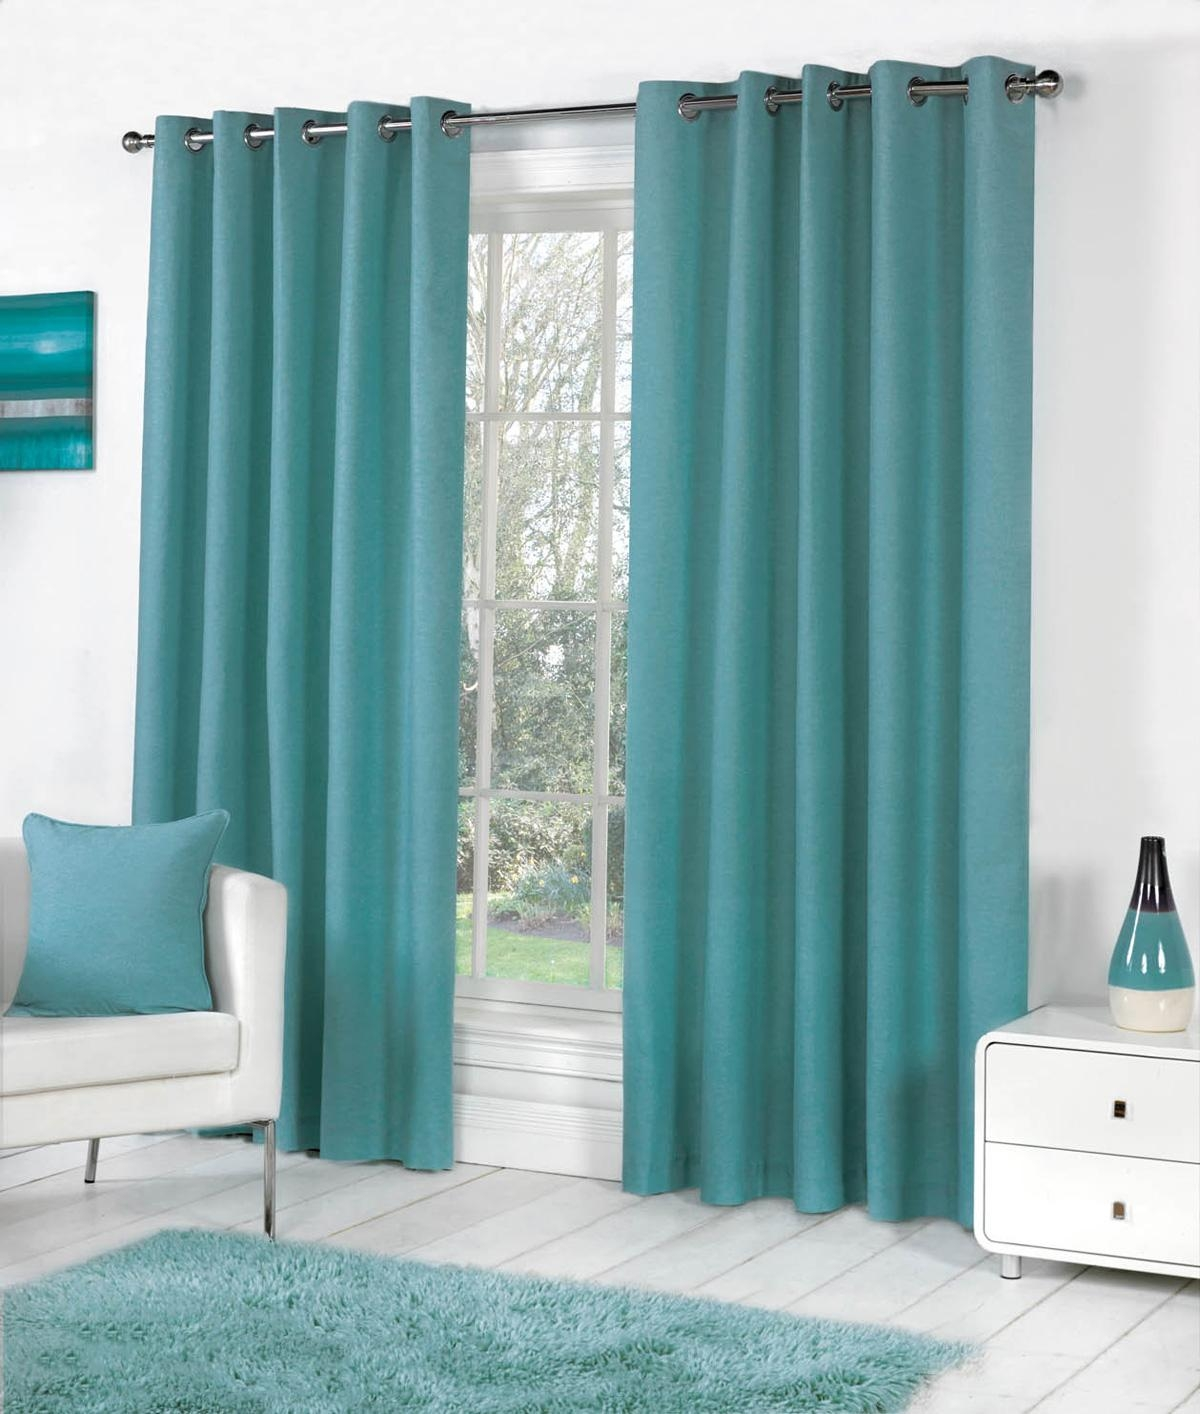 Sorbonne Eyelet Curtains In Teal Free Uk Delivery Terrys Fabrics Intended For Long Eyelet Curtains (Image 14 of 15)